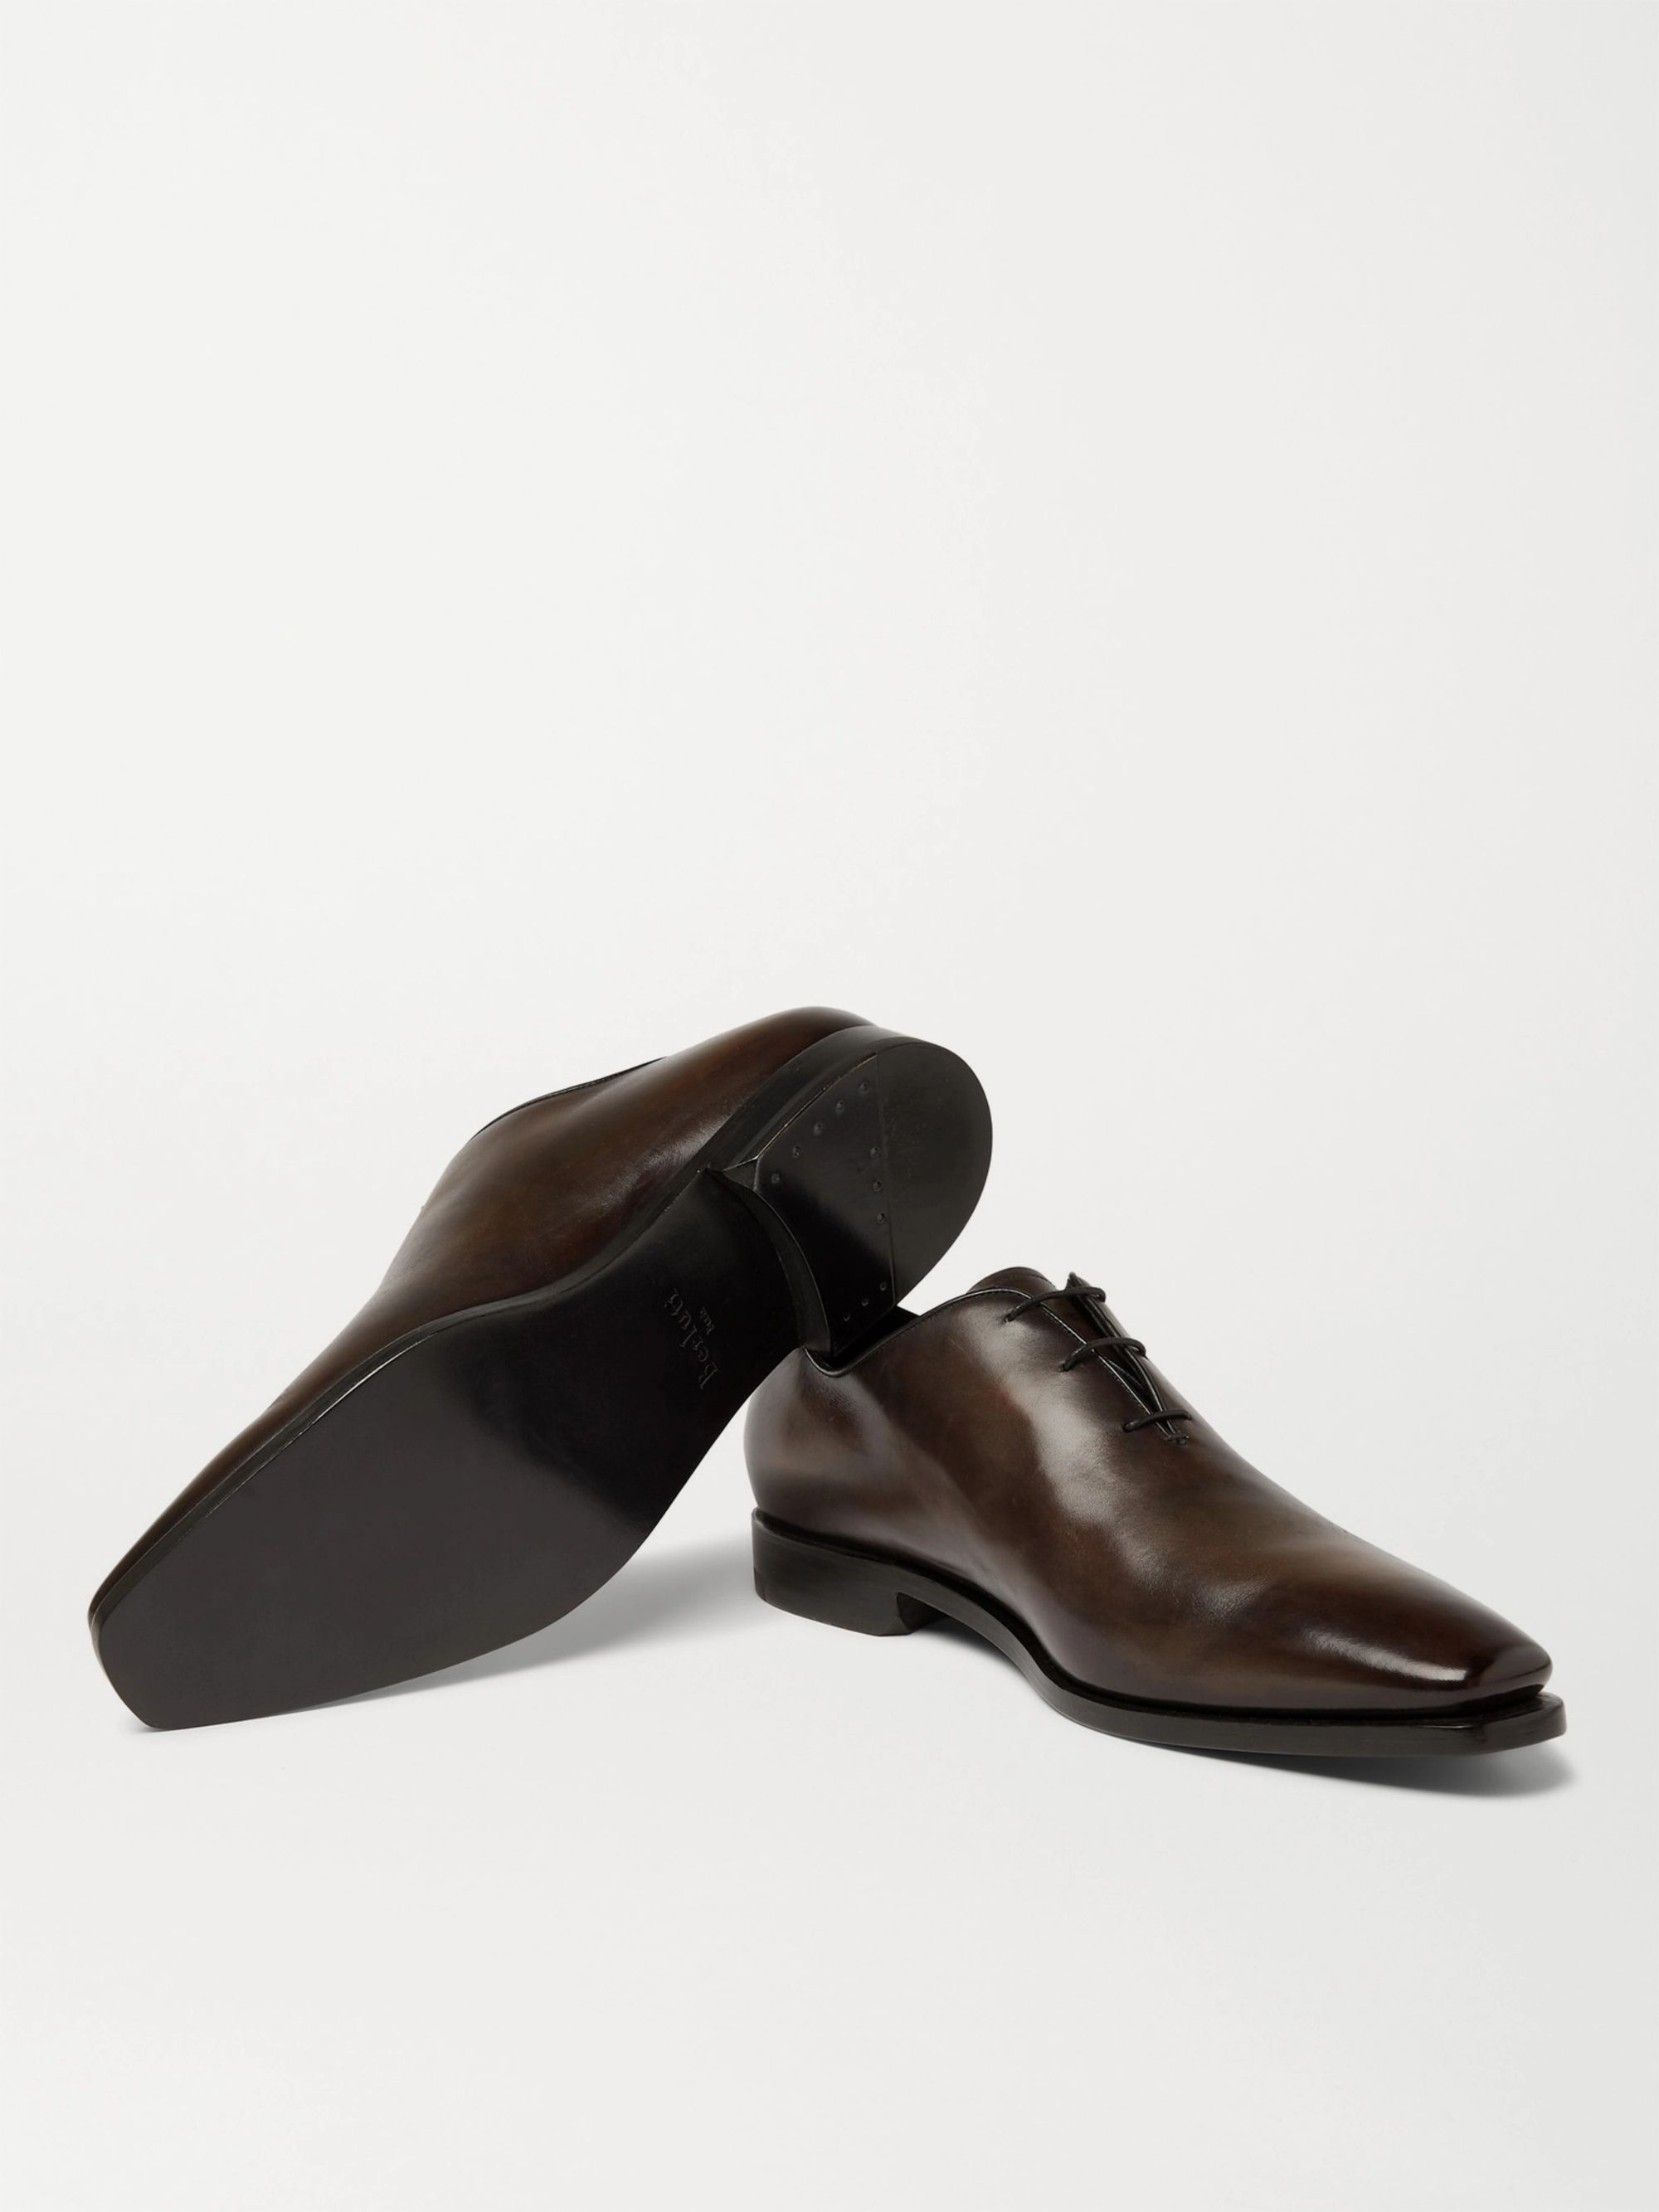 Berluti Alessandro Eclair Whole-Cut Leather Oxford Shoes